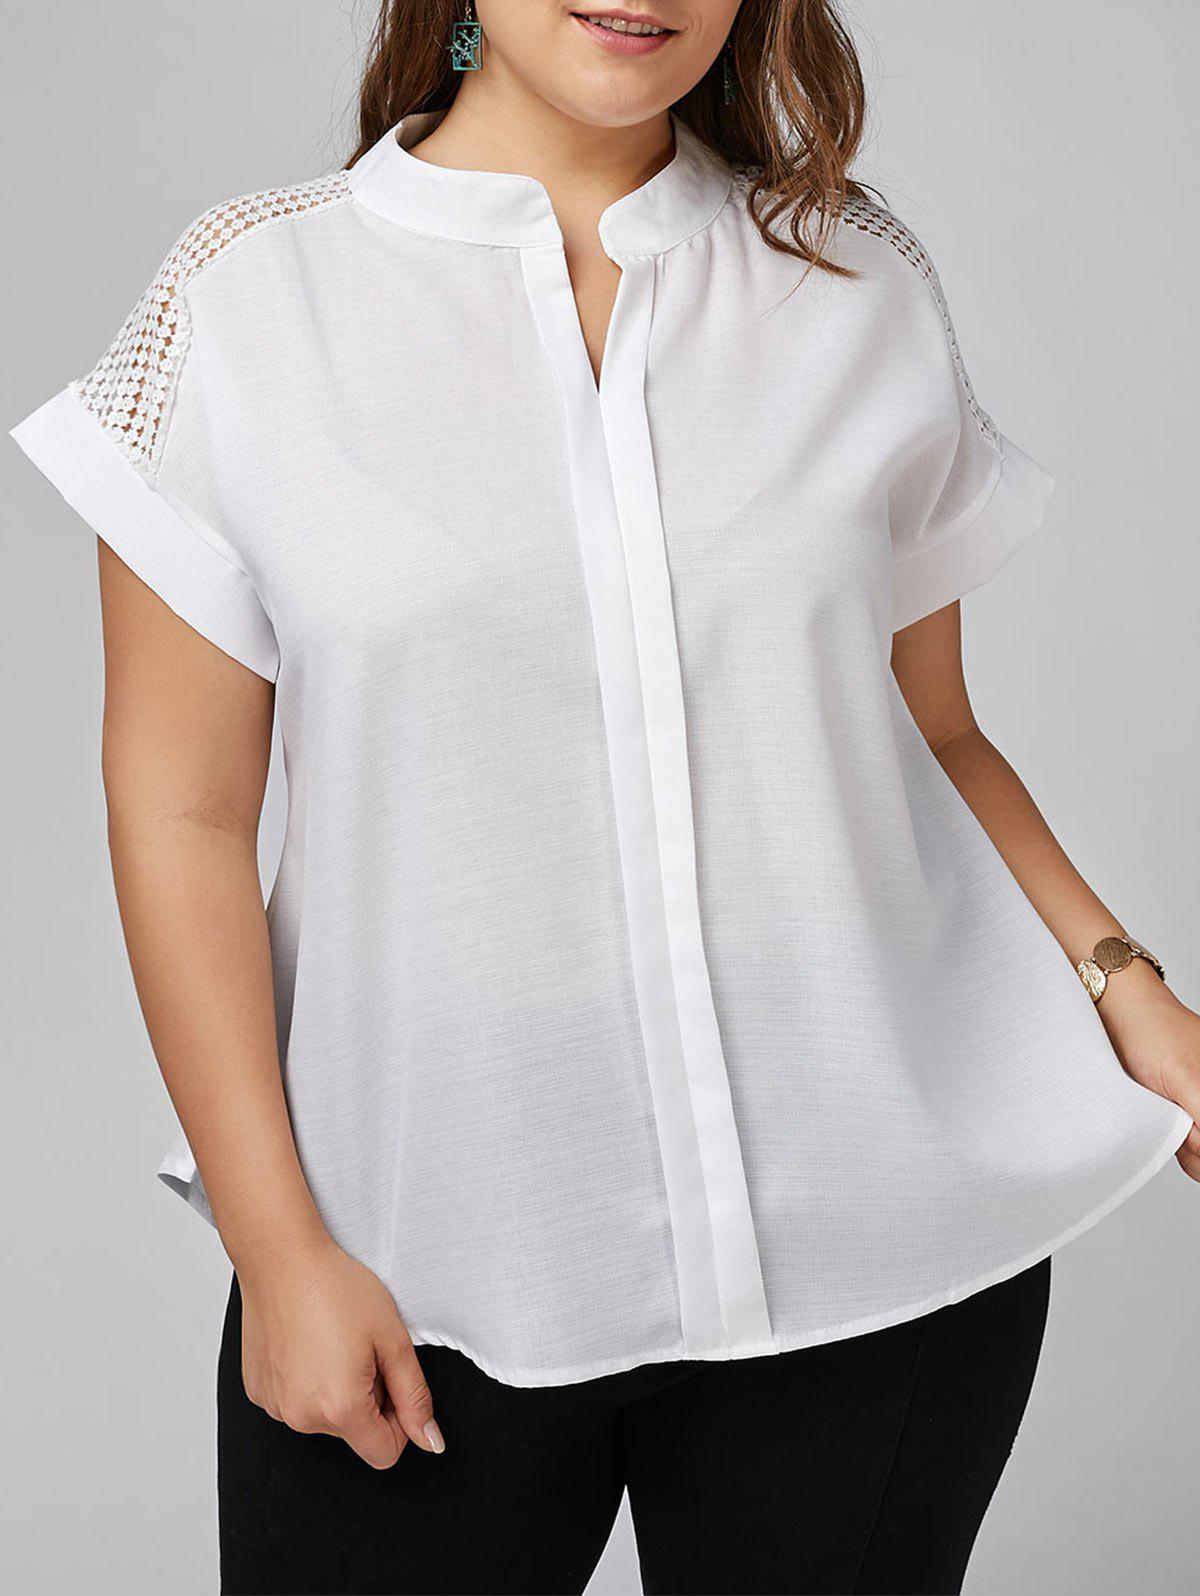 Plus Size Openwork V Neck Basic BlouseWOMEN<br><br>Size: 5XL; Color: WHITE; Material: Cotton Blends,Polyester; Shirt Length: Long; Sleeve Length: Short; Collar: V-Neck; Style: Fashion; Season: Spring,Summer; Embellishment: Hollow Out; Pattern Type: Solid; Weight: 0.2000kg; Package Contents: 1 x Blouse;